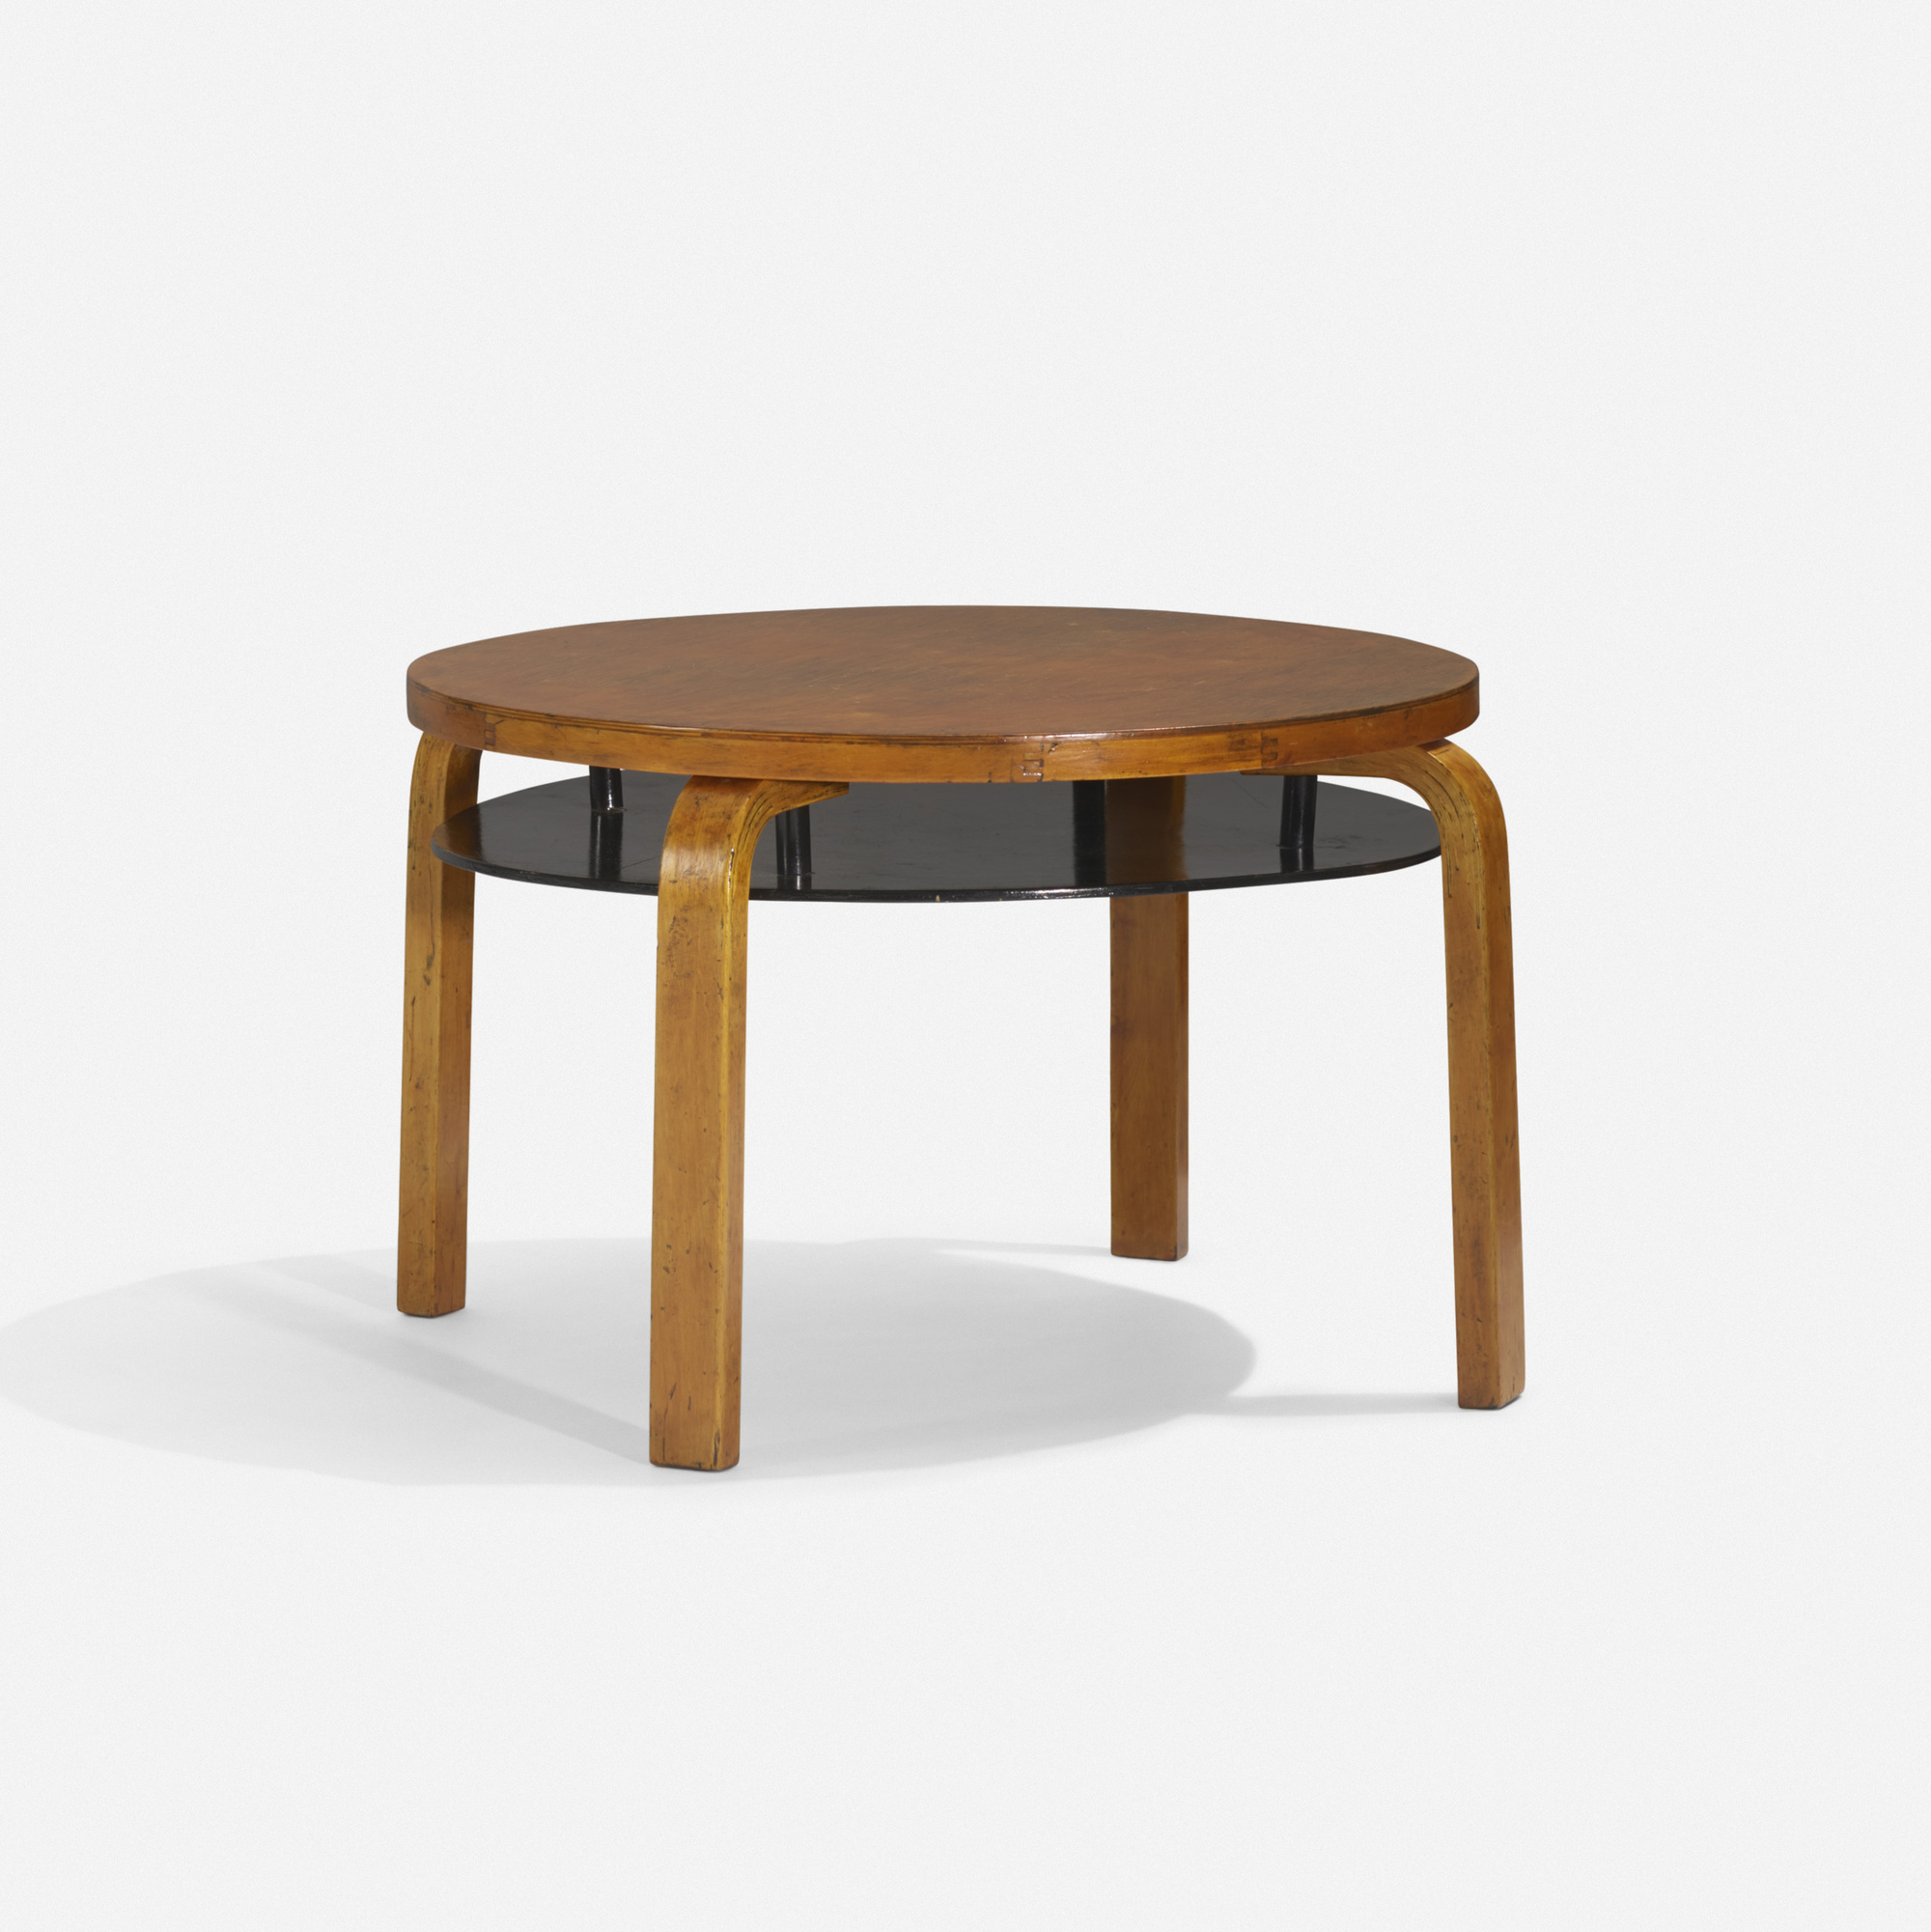 108 Alvar Aalto coffee table model 70 Scandinavian Design 3